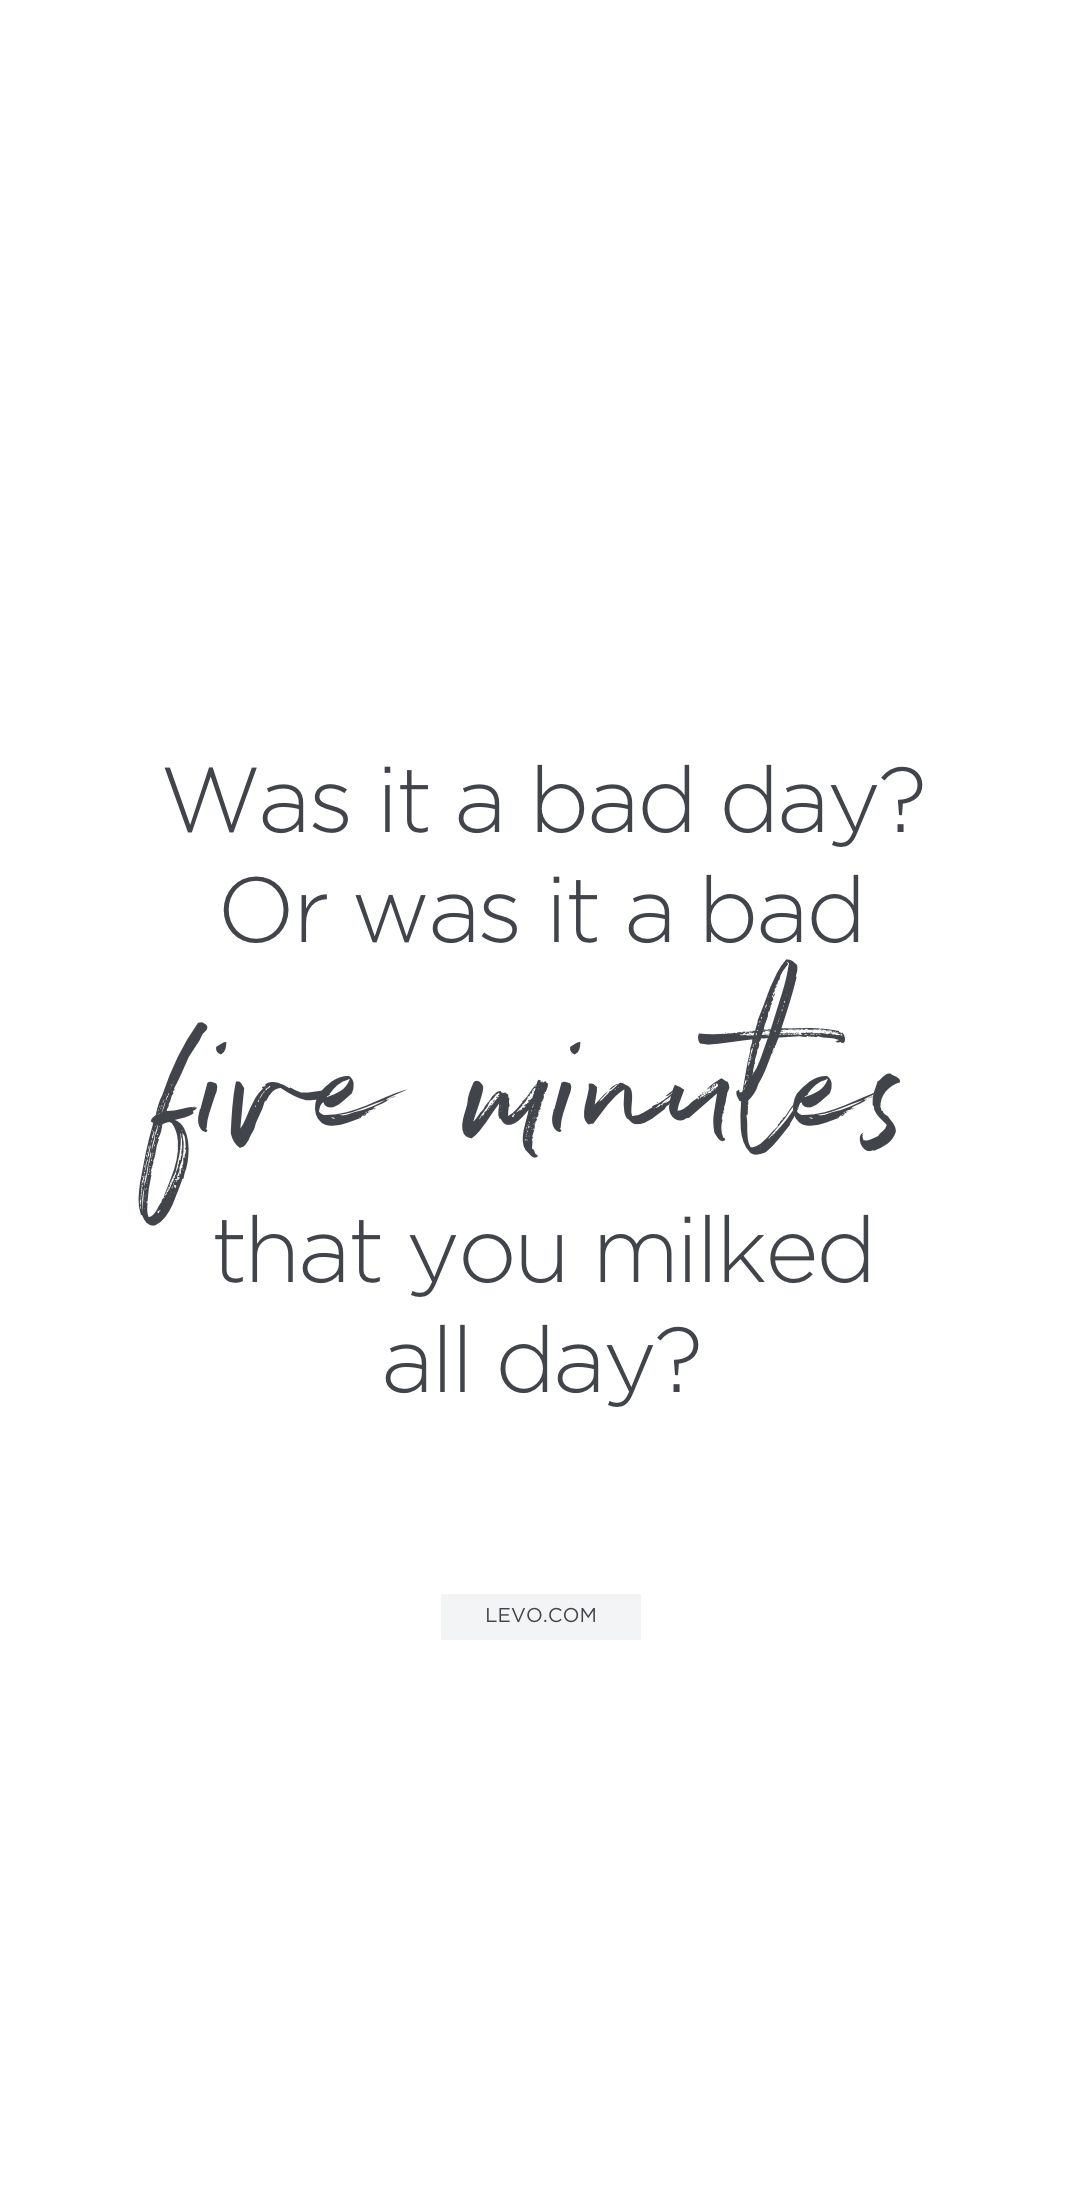 Inspirational Quotes For Bad Days : inspirational, quotes, Uplifting, Quotes, Better:, Perspective, Minutes, Quotes,, Motivational